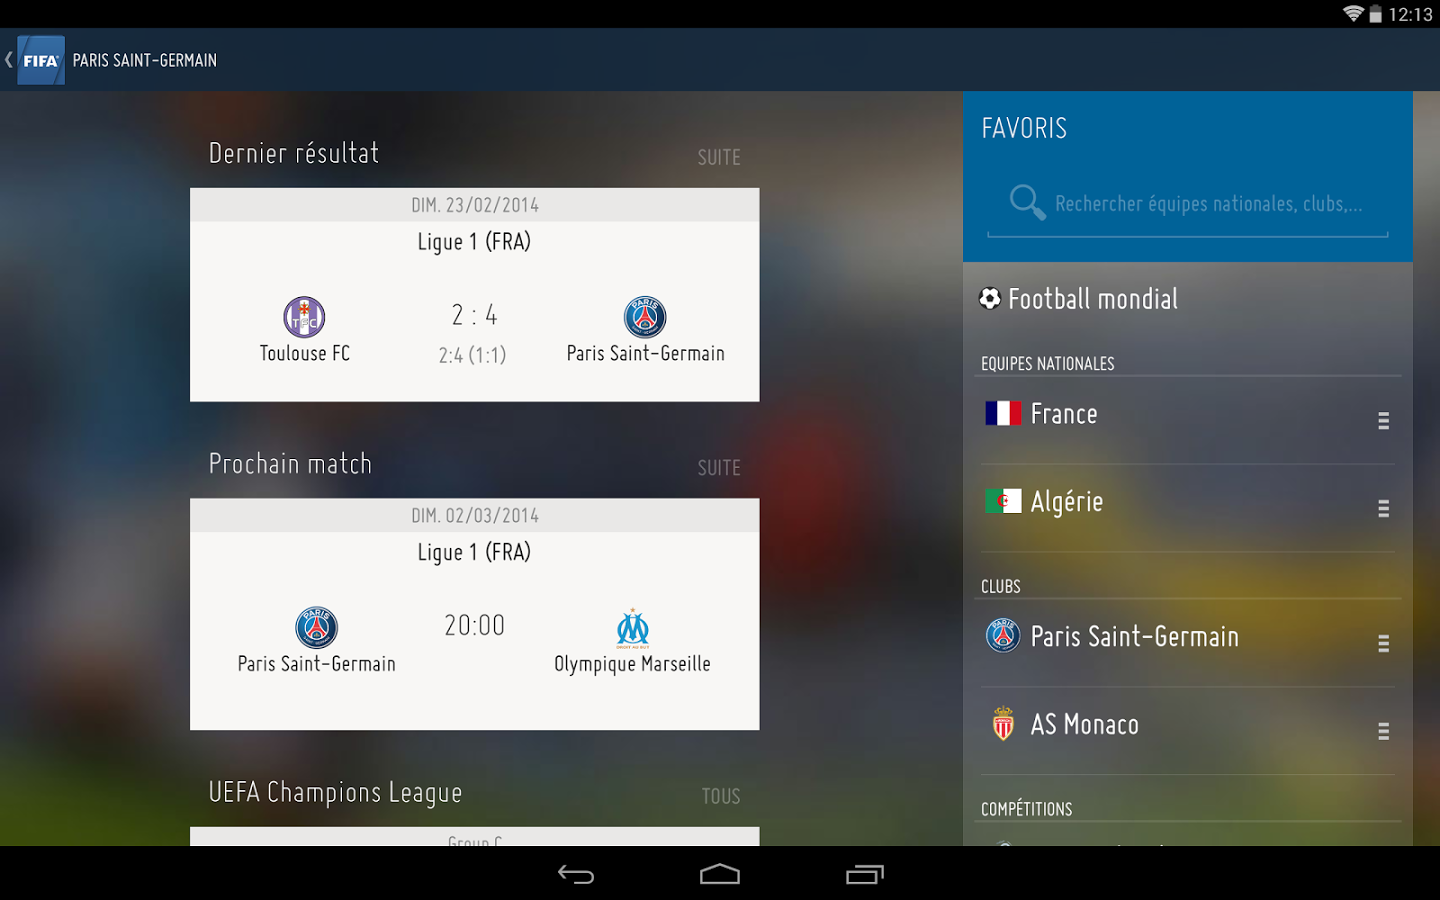 FIFA-Tablette free apps